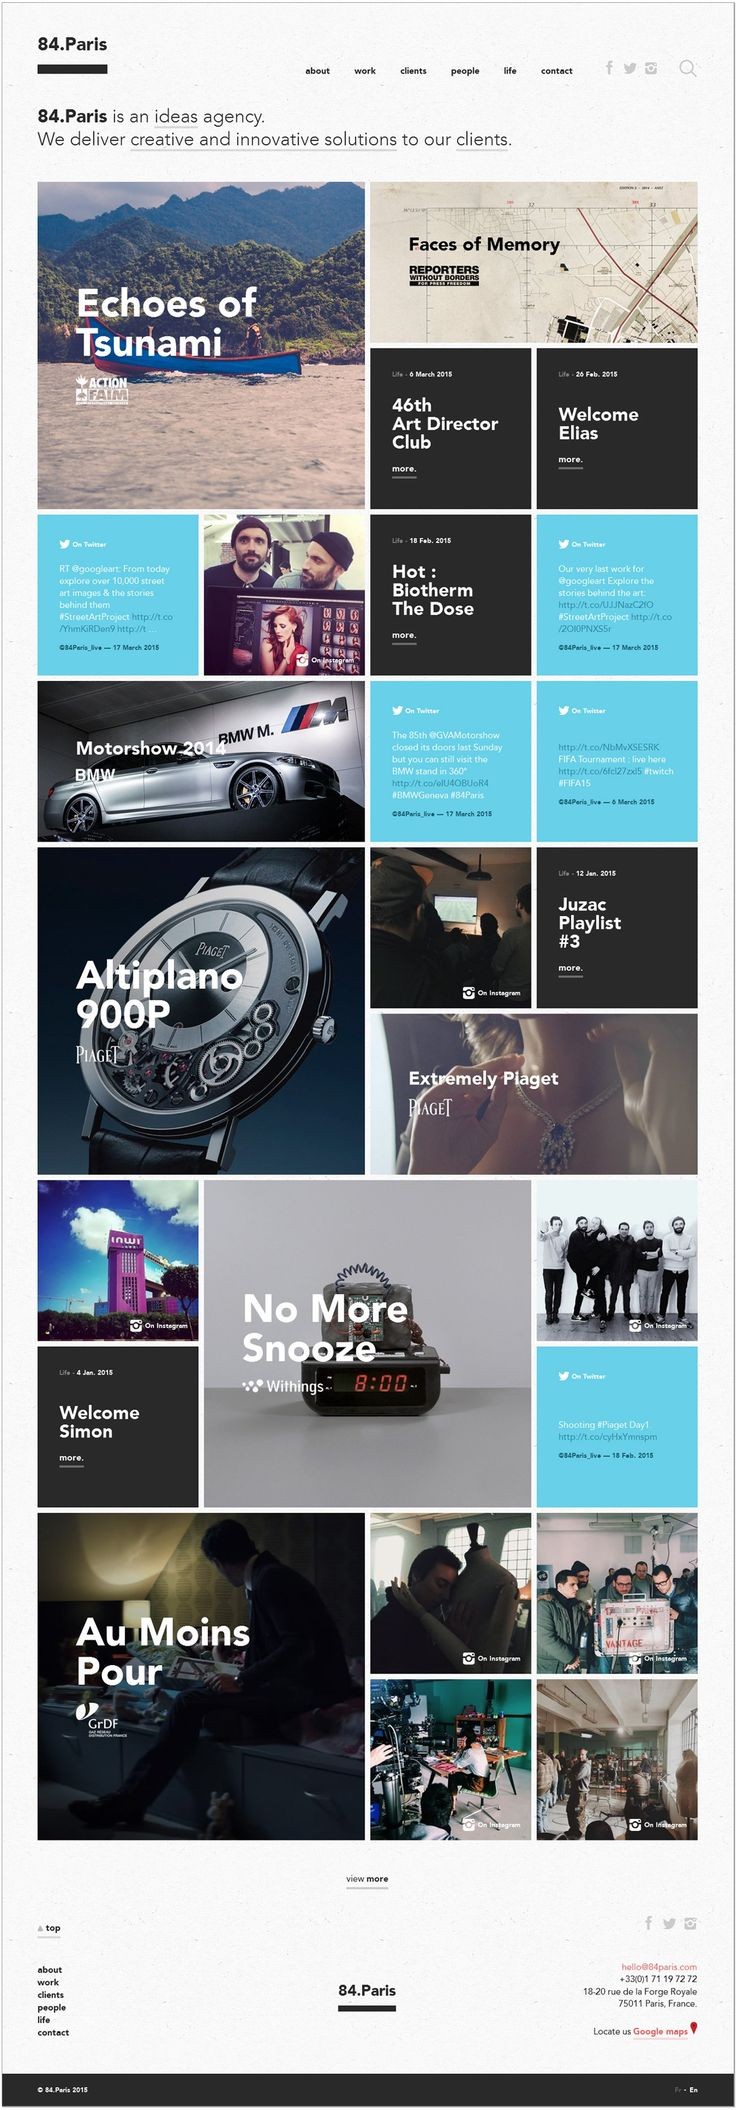 12 best website layout images on Pinterest | Graph design, Editorial ...